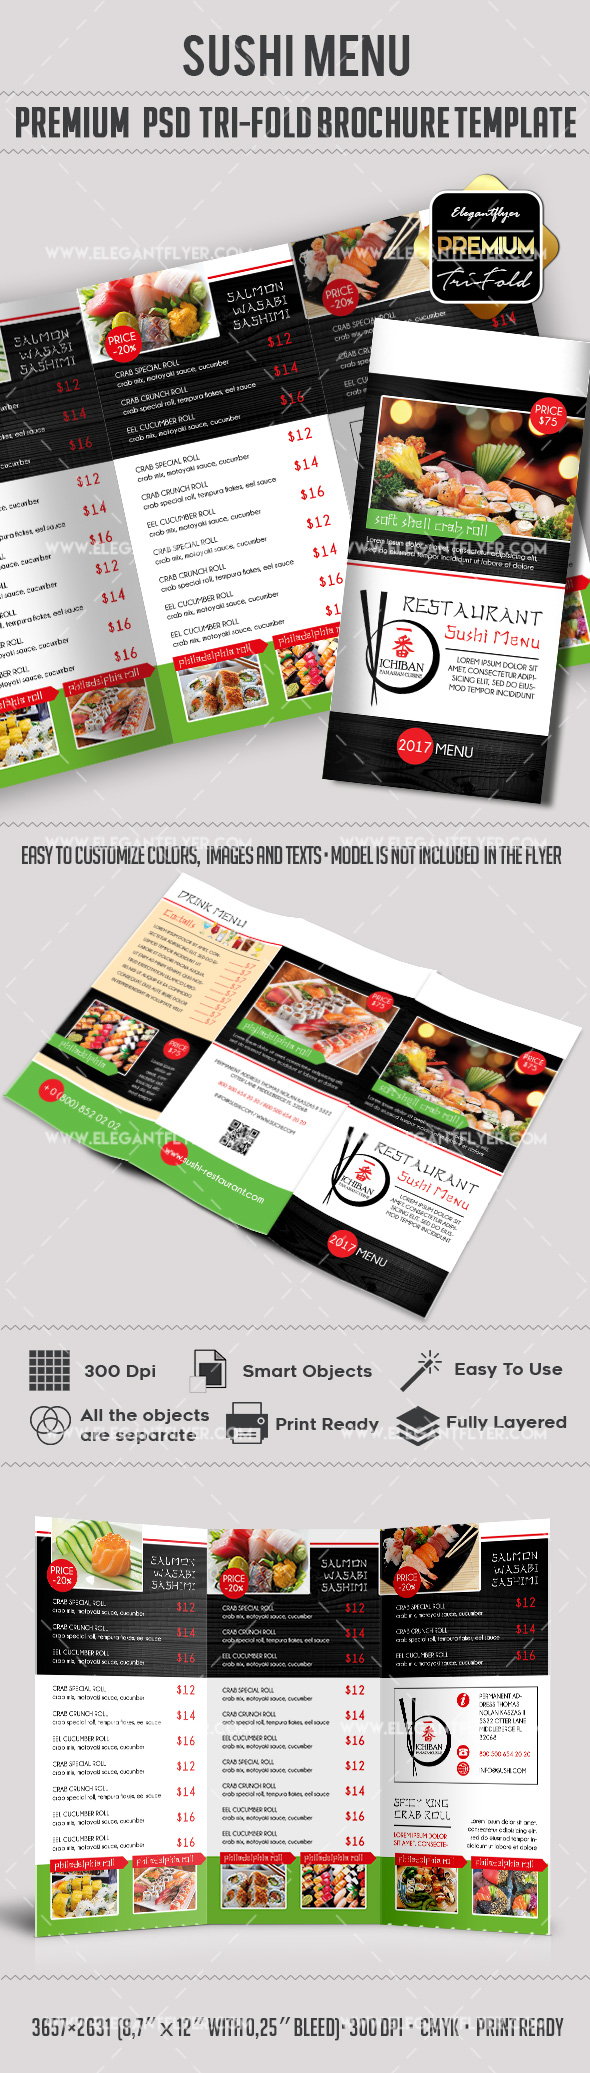 Tri-Fold PSD Brochure for Sushi Menu